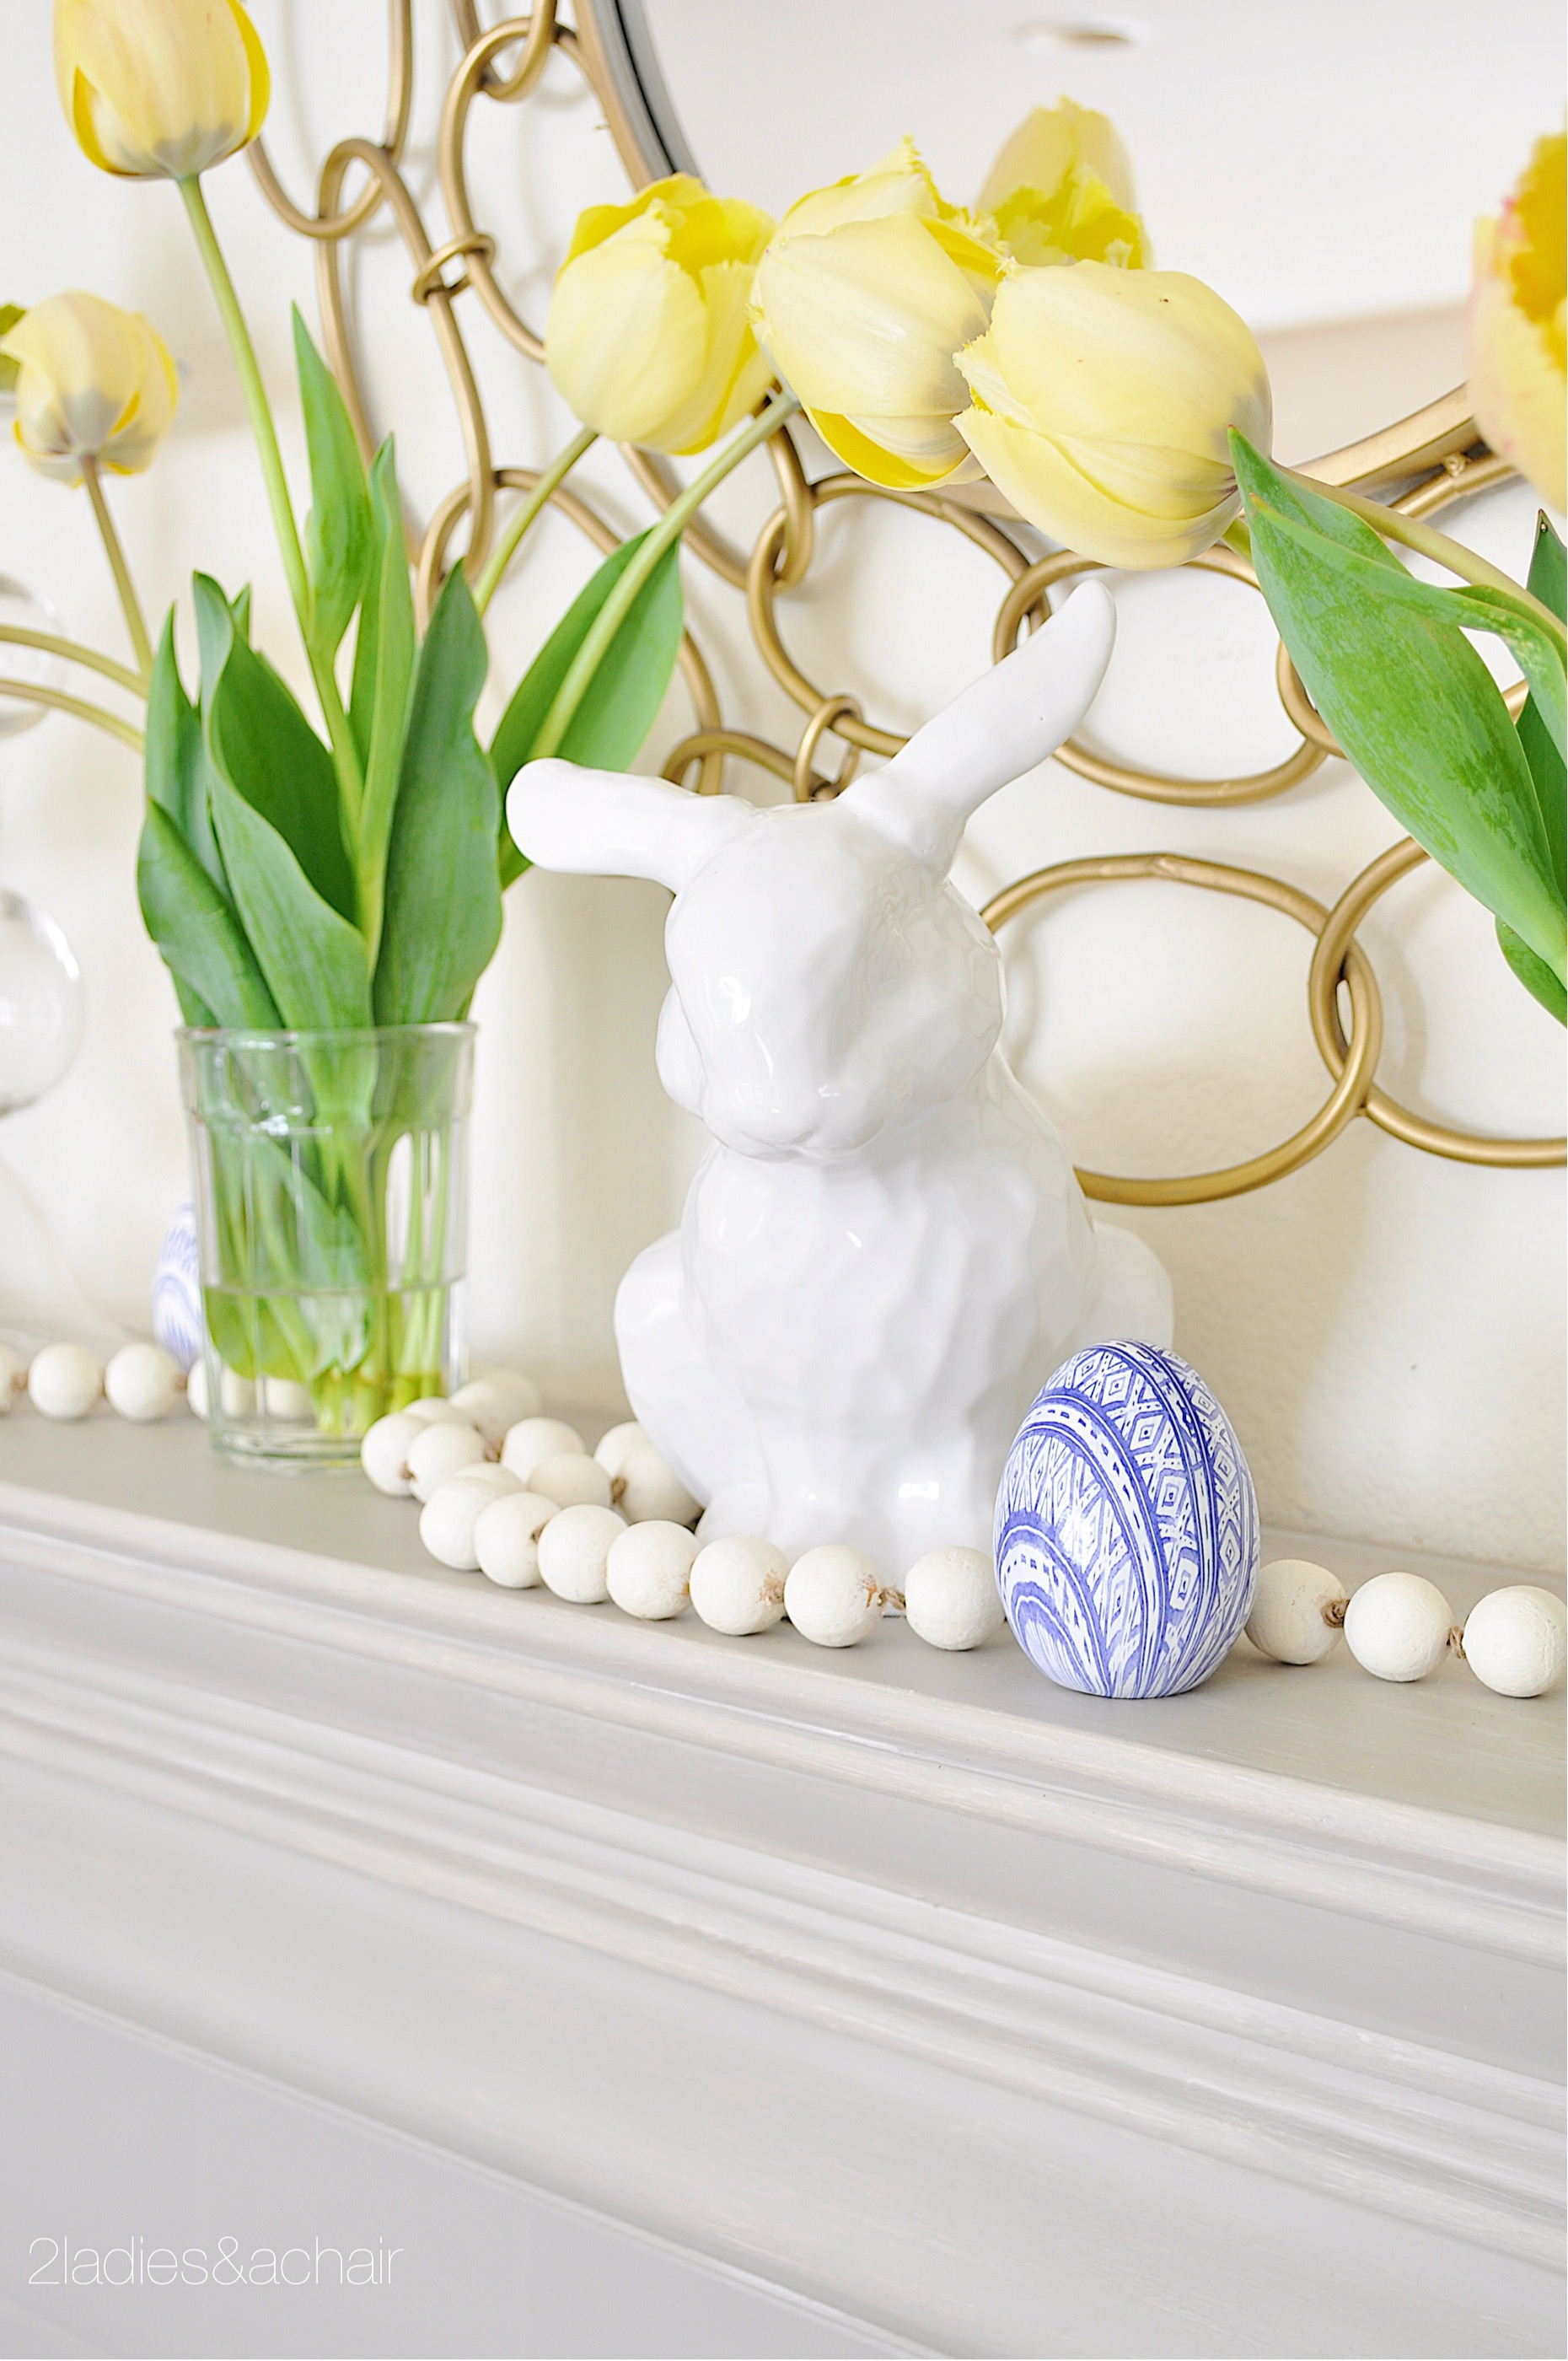 easter mantel decor IMG_1898.JPG